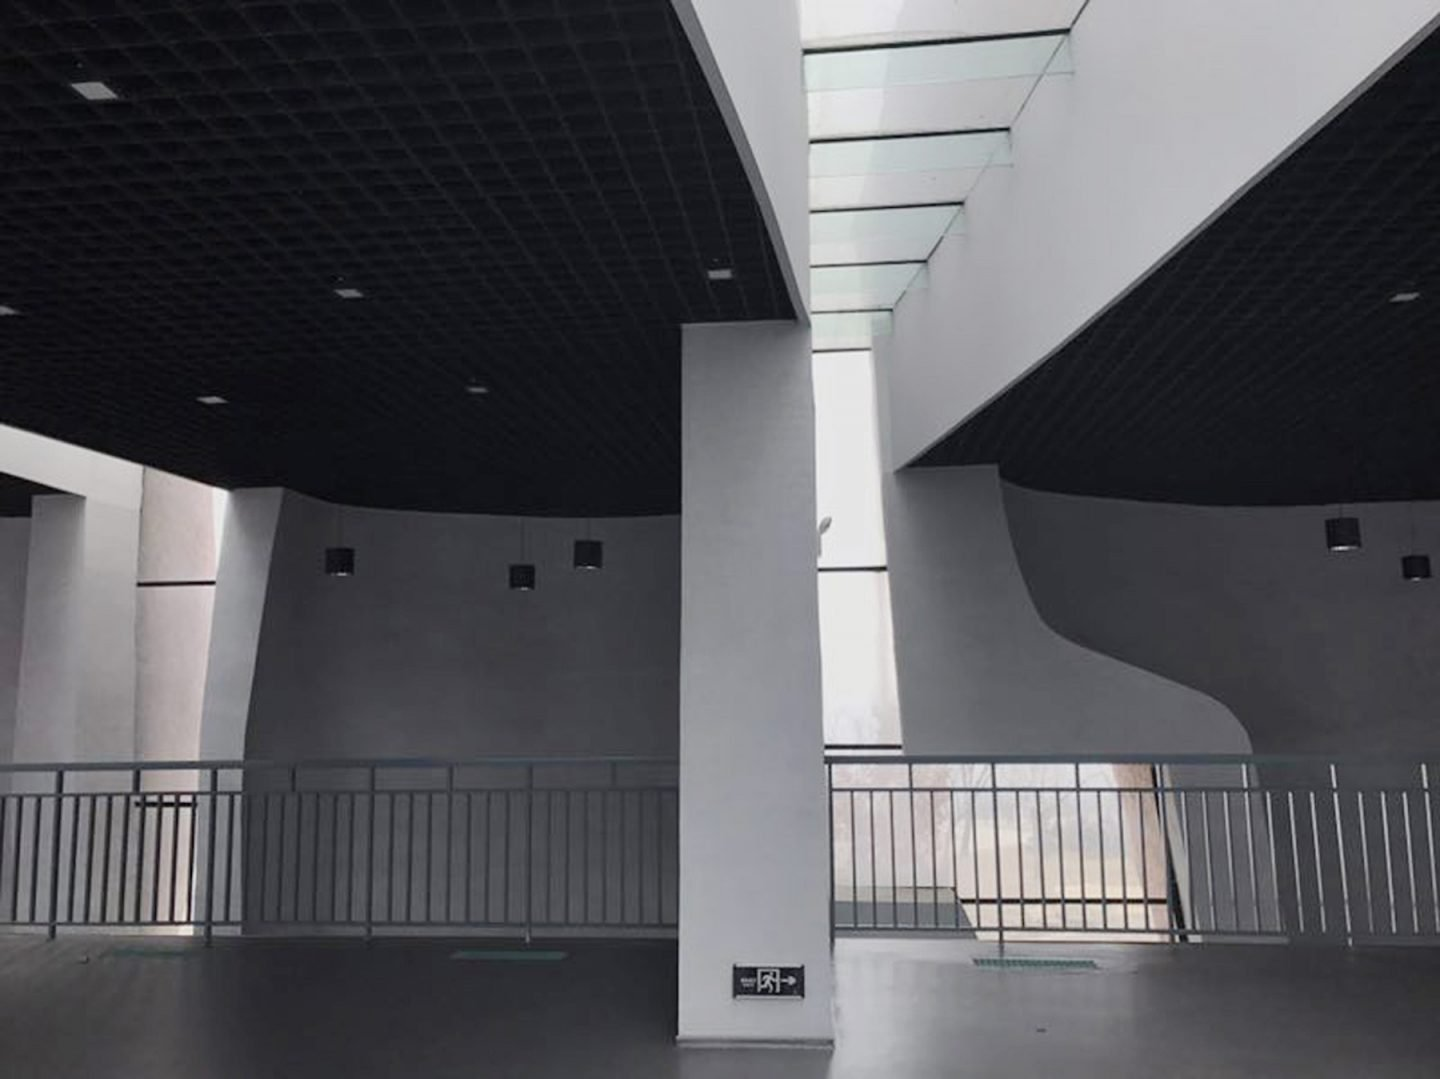 iGNANT-Architecture-Zhanghua-Architects-Tianjin-University-Gallery-20